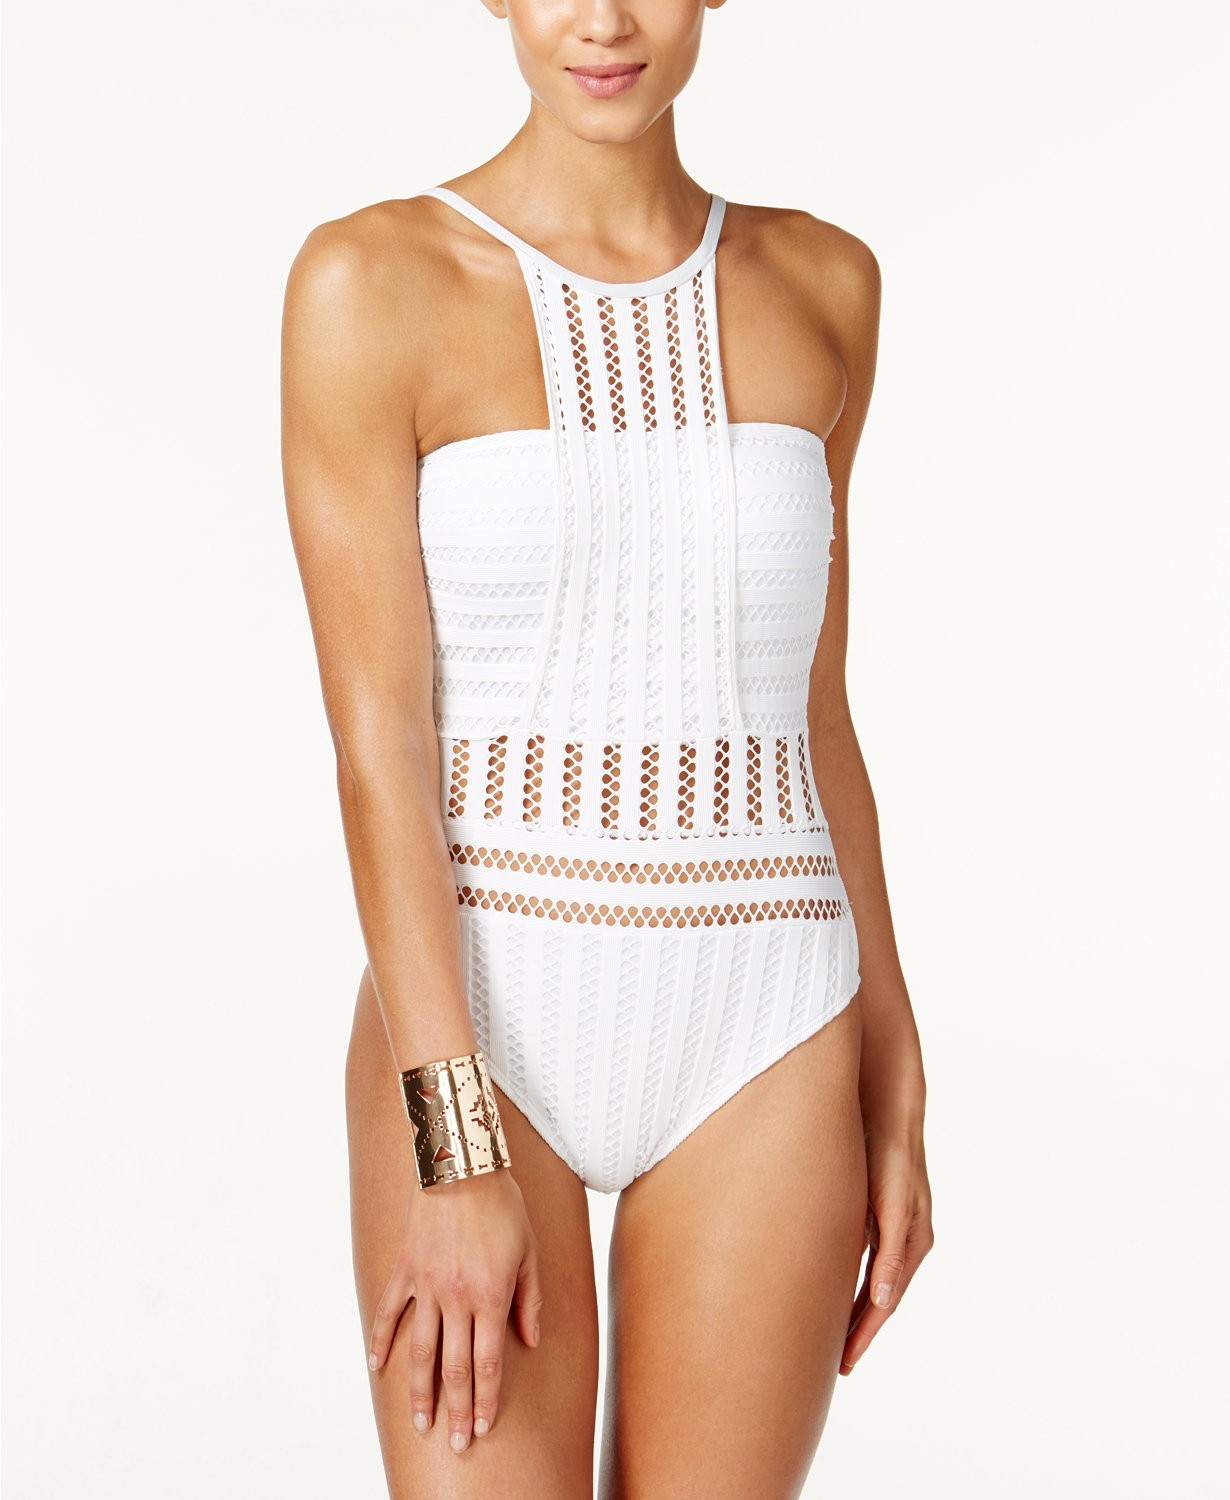 White Crochet One Piece Swimsuit Luxury Kenneth Cole tough Luxe Crochet High Neck E Piece Of Top 42 Images White Crochet One Piece Swimsuit